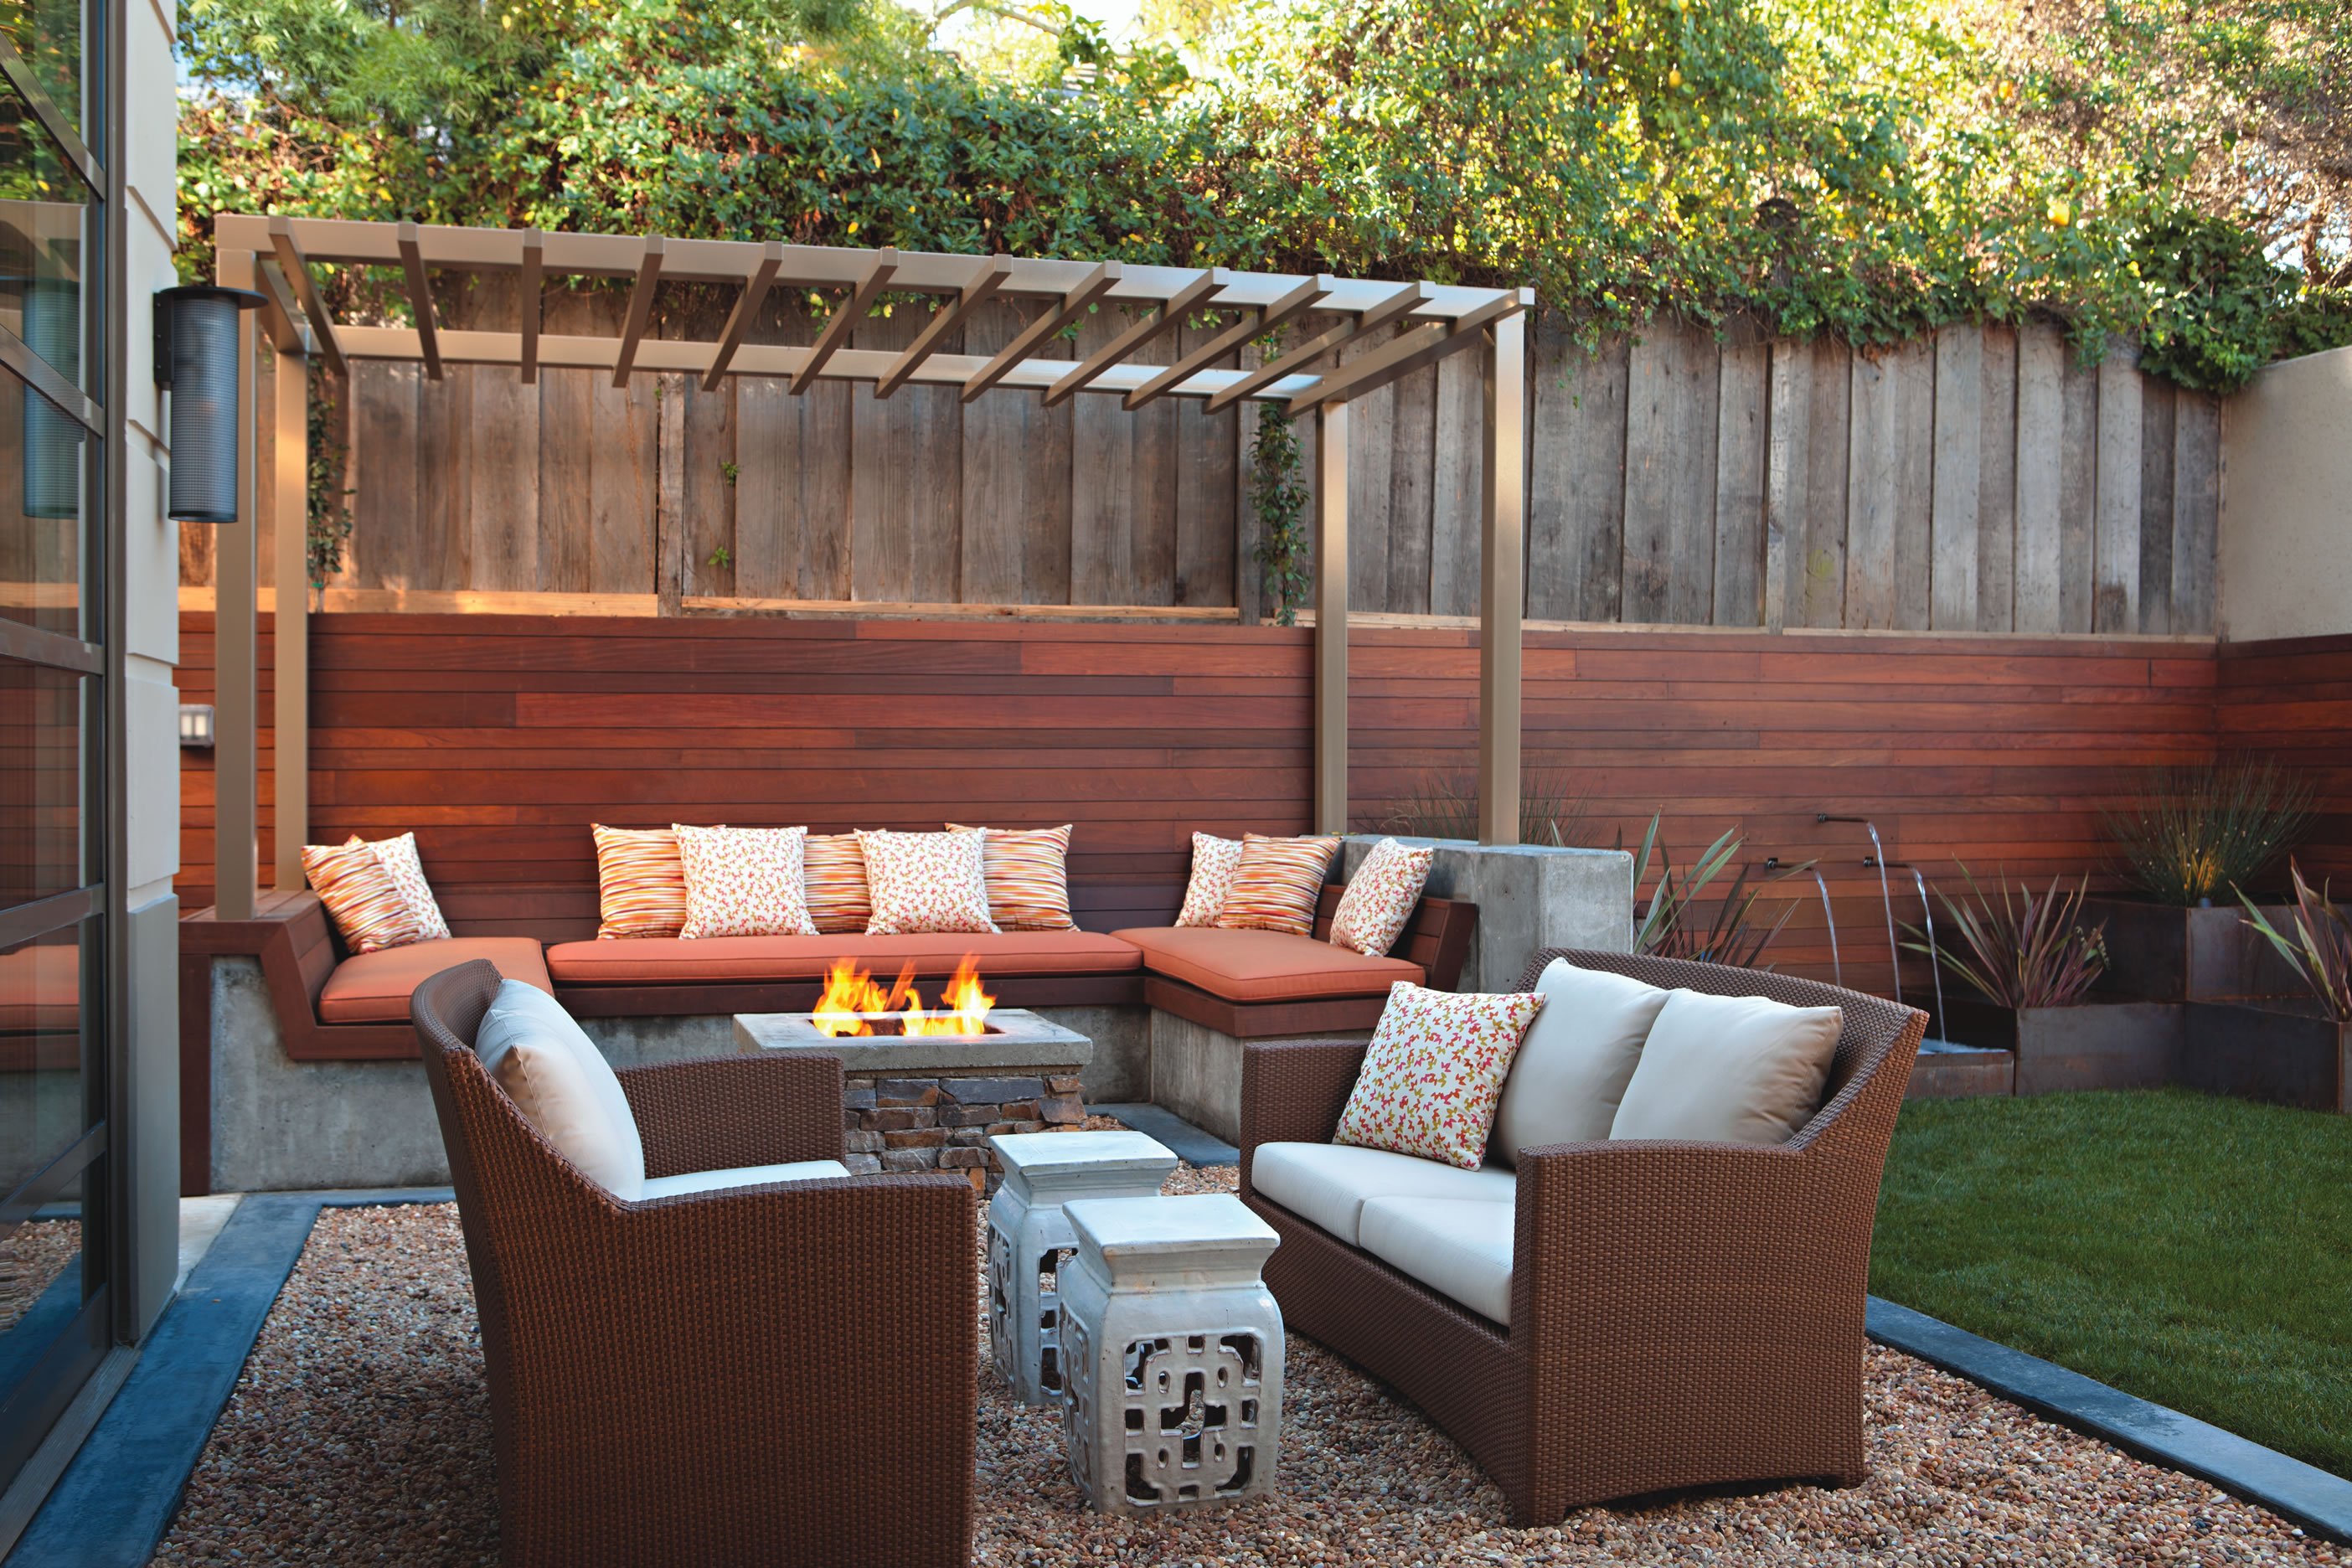 Laguna beach magazine firebrand media llc outdoor Outdoor home design ideas